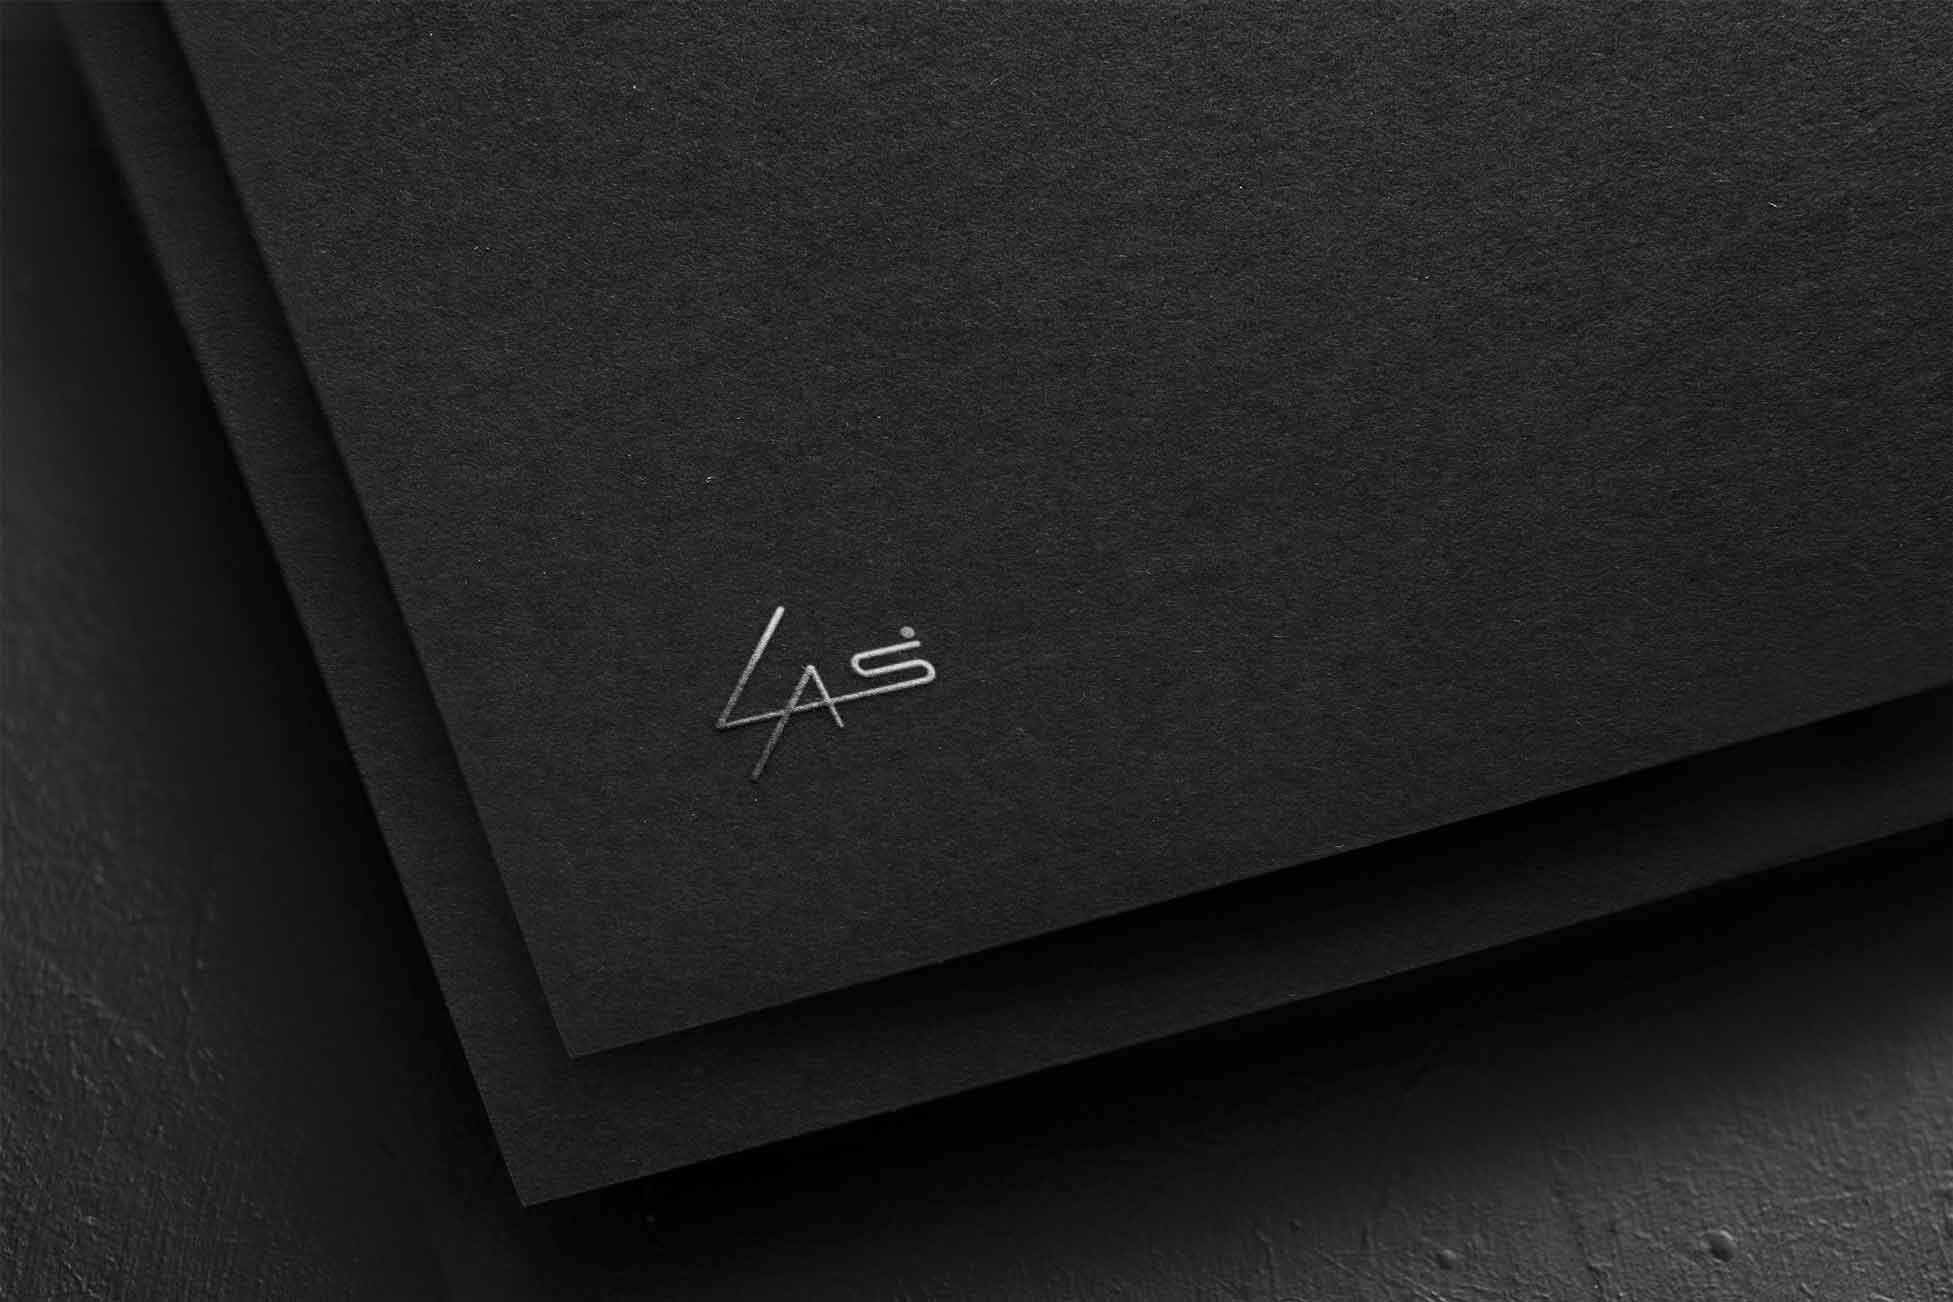 Silver LAS Design logo printed on black paper